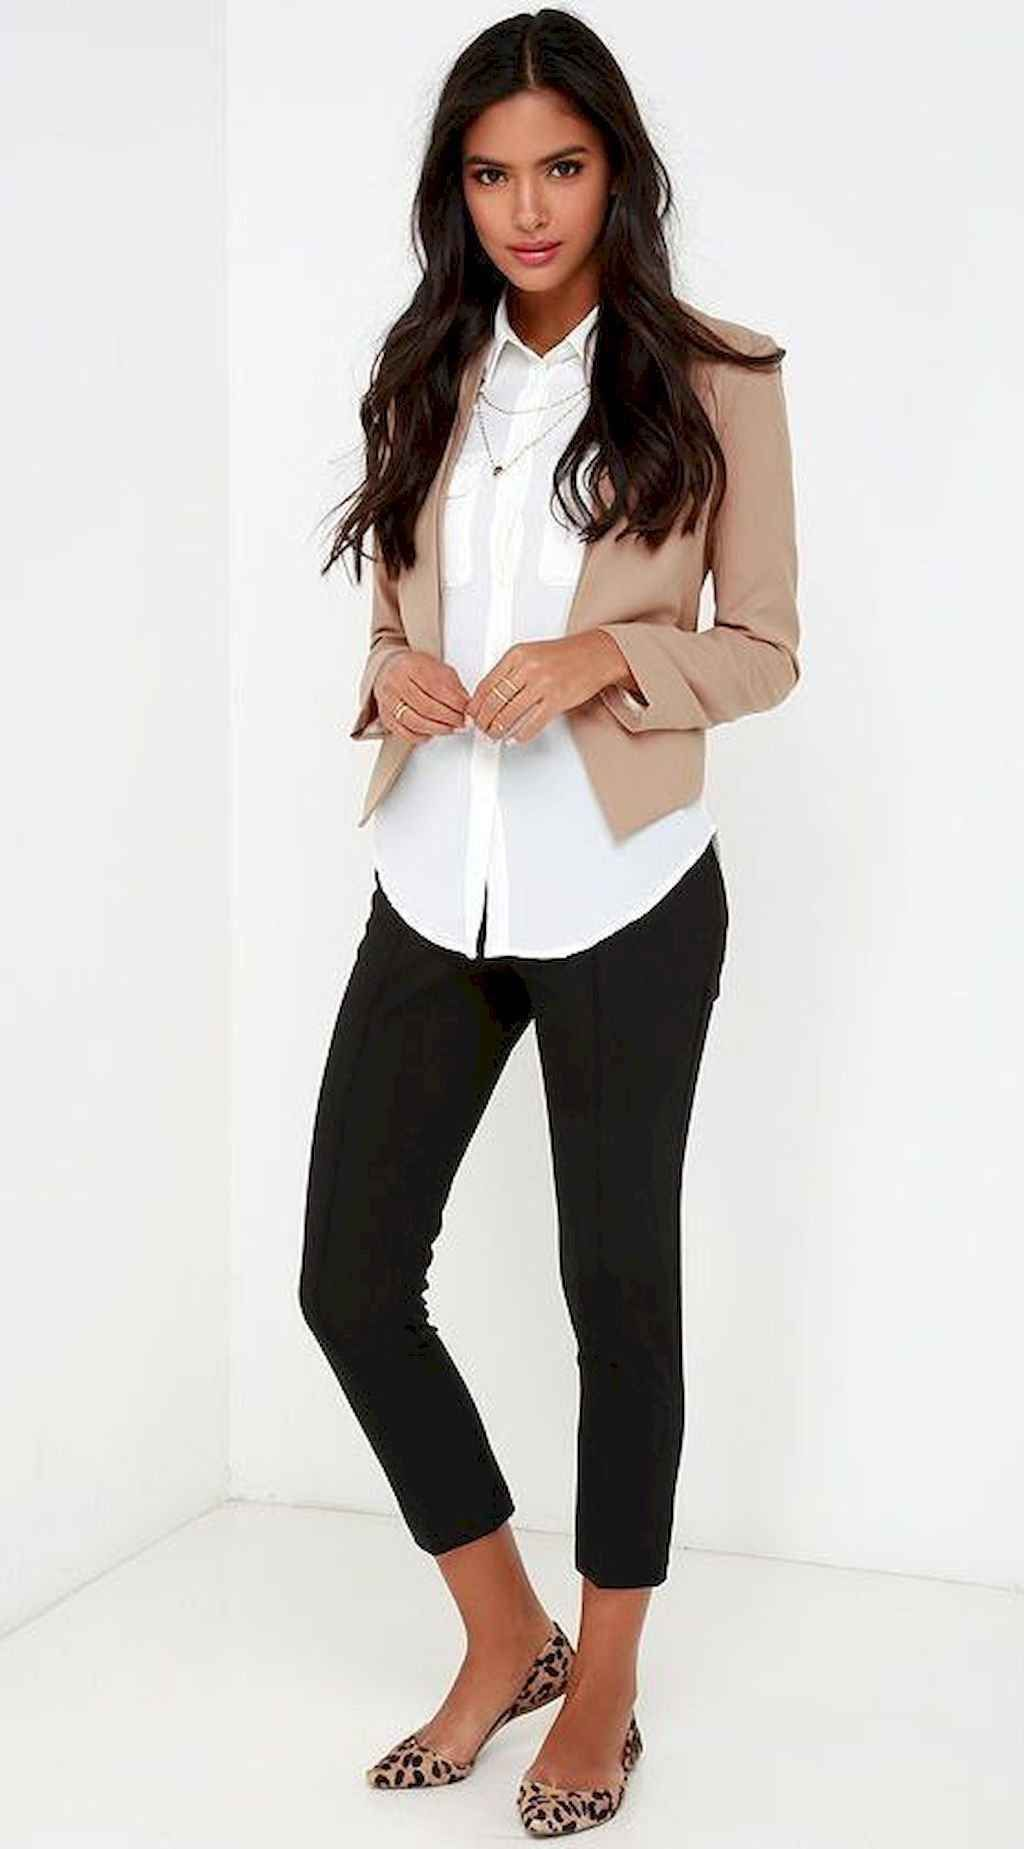 05 Best Business Casual Outfit Ideas for Women | Work